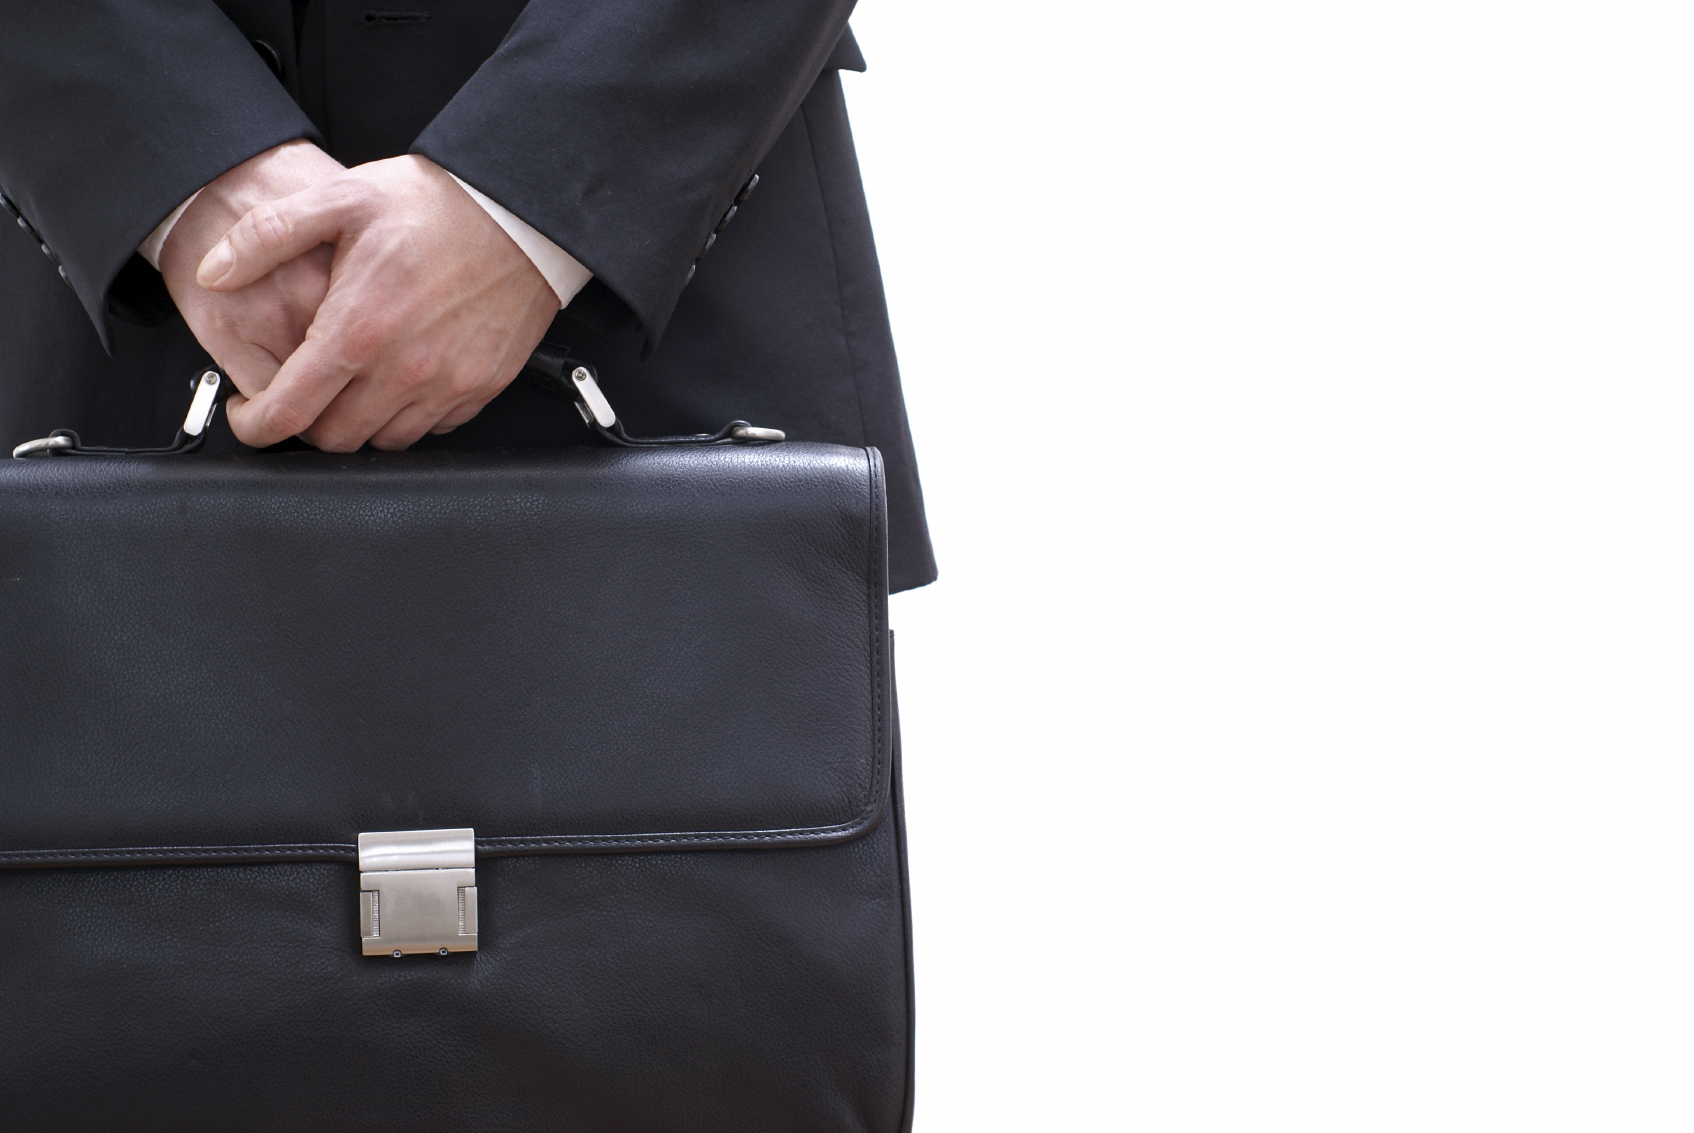 Photo of person holding briefcase